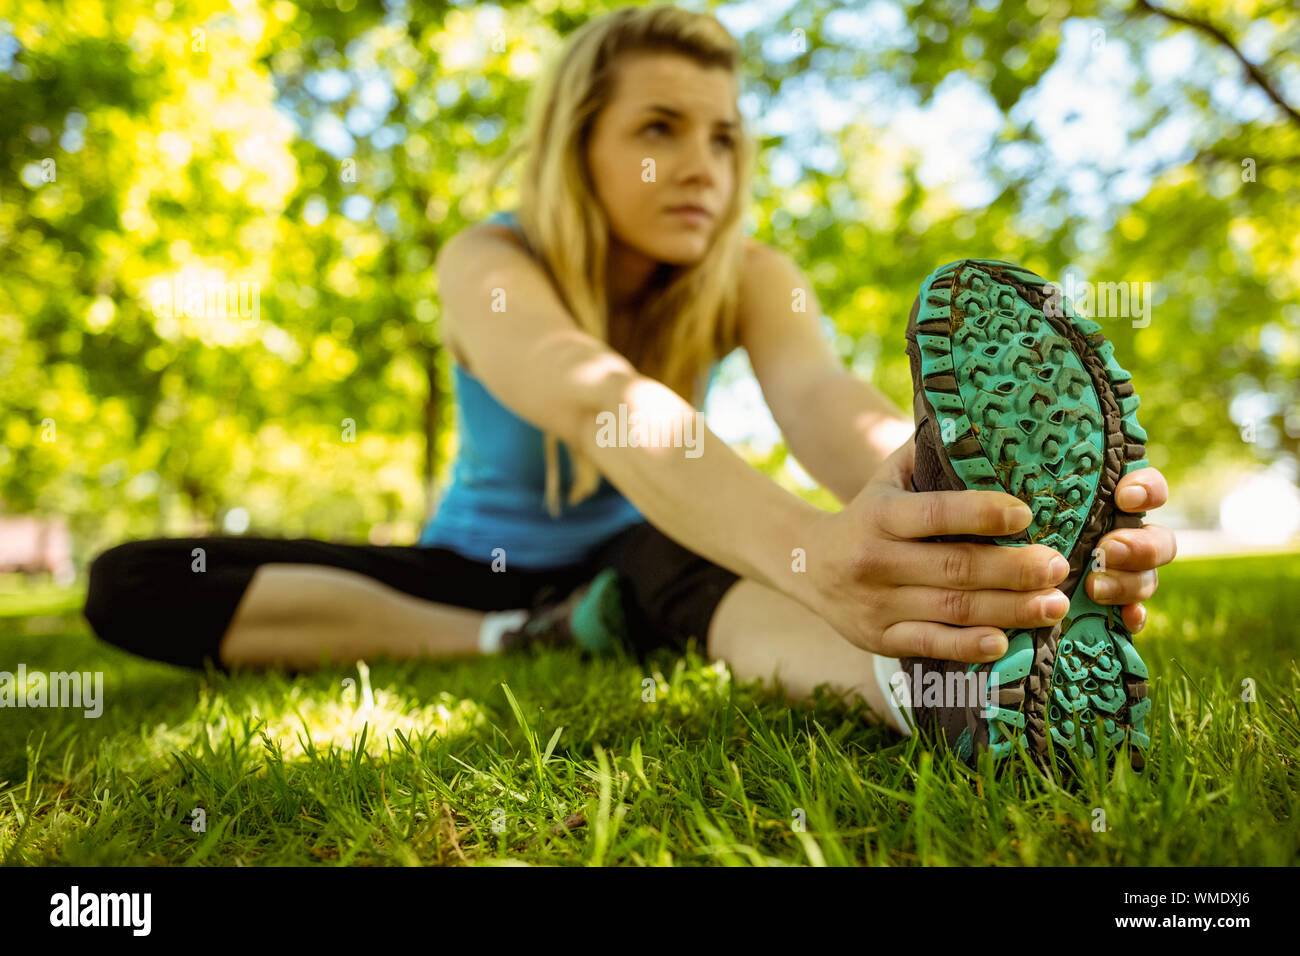 Fit blonde stretching on the grass on a sunny day Stock Photo